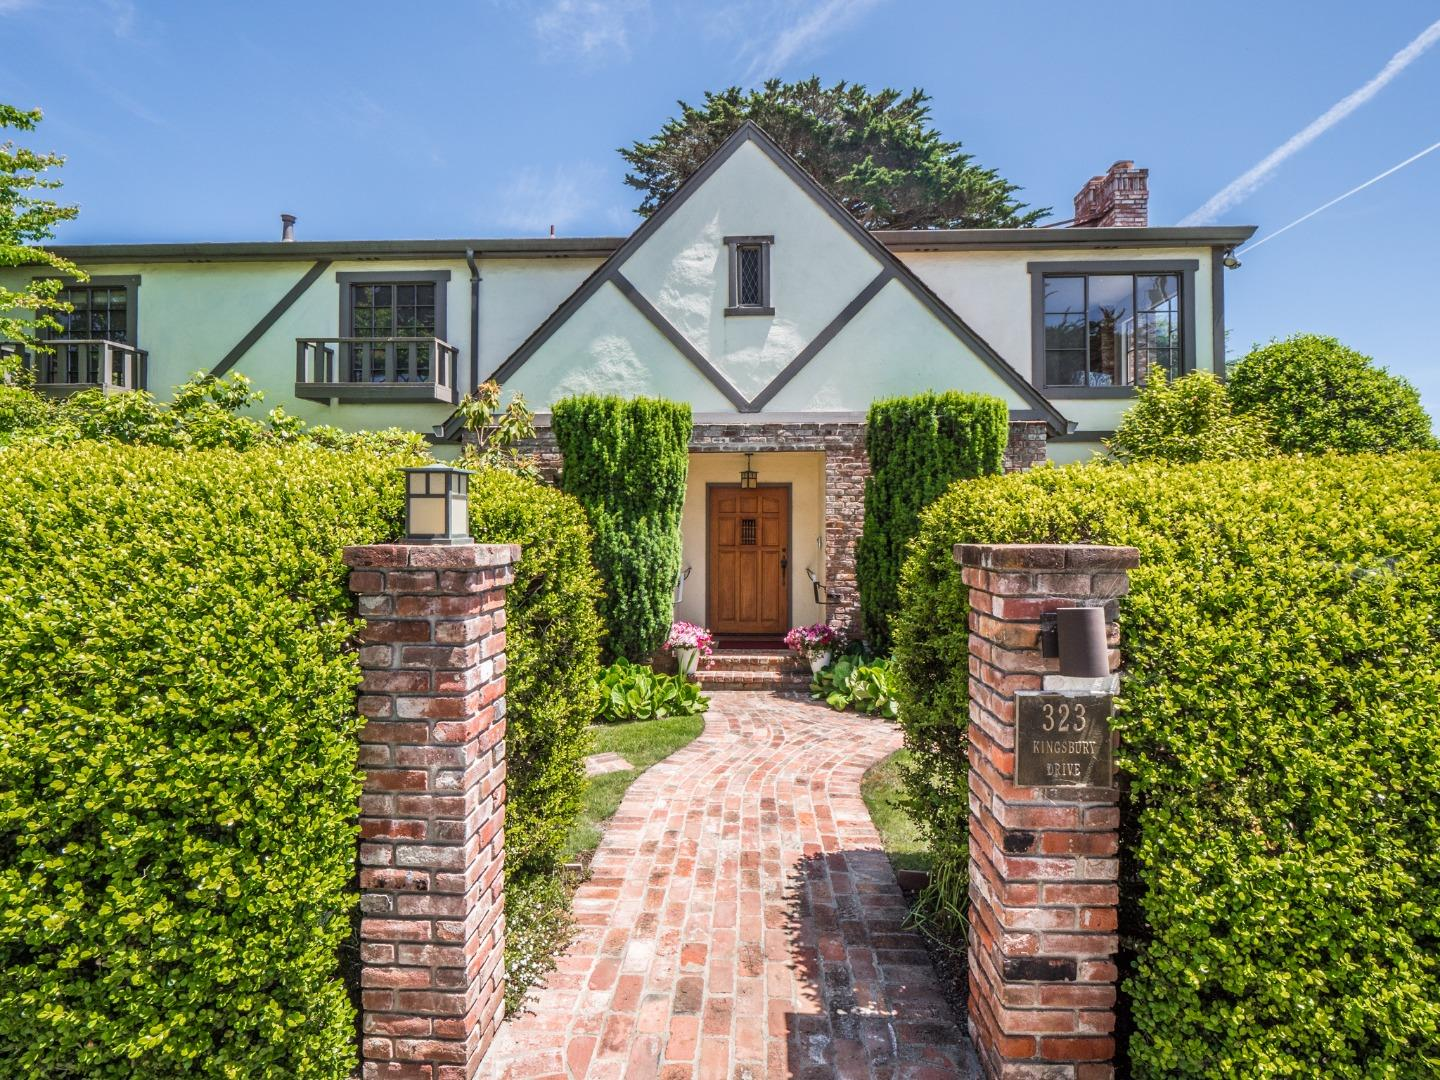 Tudor style architecture with an ocean scenic neighborhood mark this property as truly unique.  Enjoy your midday meal with the smell of salt in the air and the tranquil sound of waves beneath you, surrounded by vibrantly colorful gardens.  The interior speaks of craftsman charm, with engaged ceiling beams in the family room, cherry cabinets and mantle in the living room, and ocean views in several rooms of the home.  Your champagne can be chilled in the wet bar.  A master suite offers separate closets and sinks for a couple, as well as an attached deck with the ocean in front of you.  The den has custom cherry cabinets, fireplace, and ocean view..  A huge family room for grand family activities.  The interior has been freshly painted, has new flooring, and refinished wood floors in the kitchen.  The home is conveniently close to the Rio Cafe and a staircase to the beach is just a few blocks away.  Come see what a mix of Tudor style home with our Santa Cruz ocean creates!